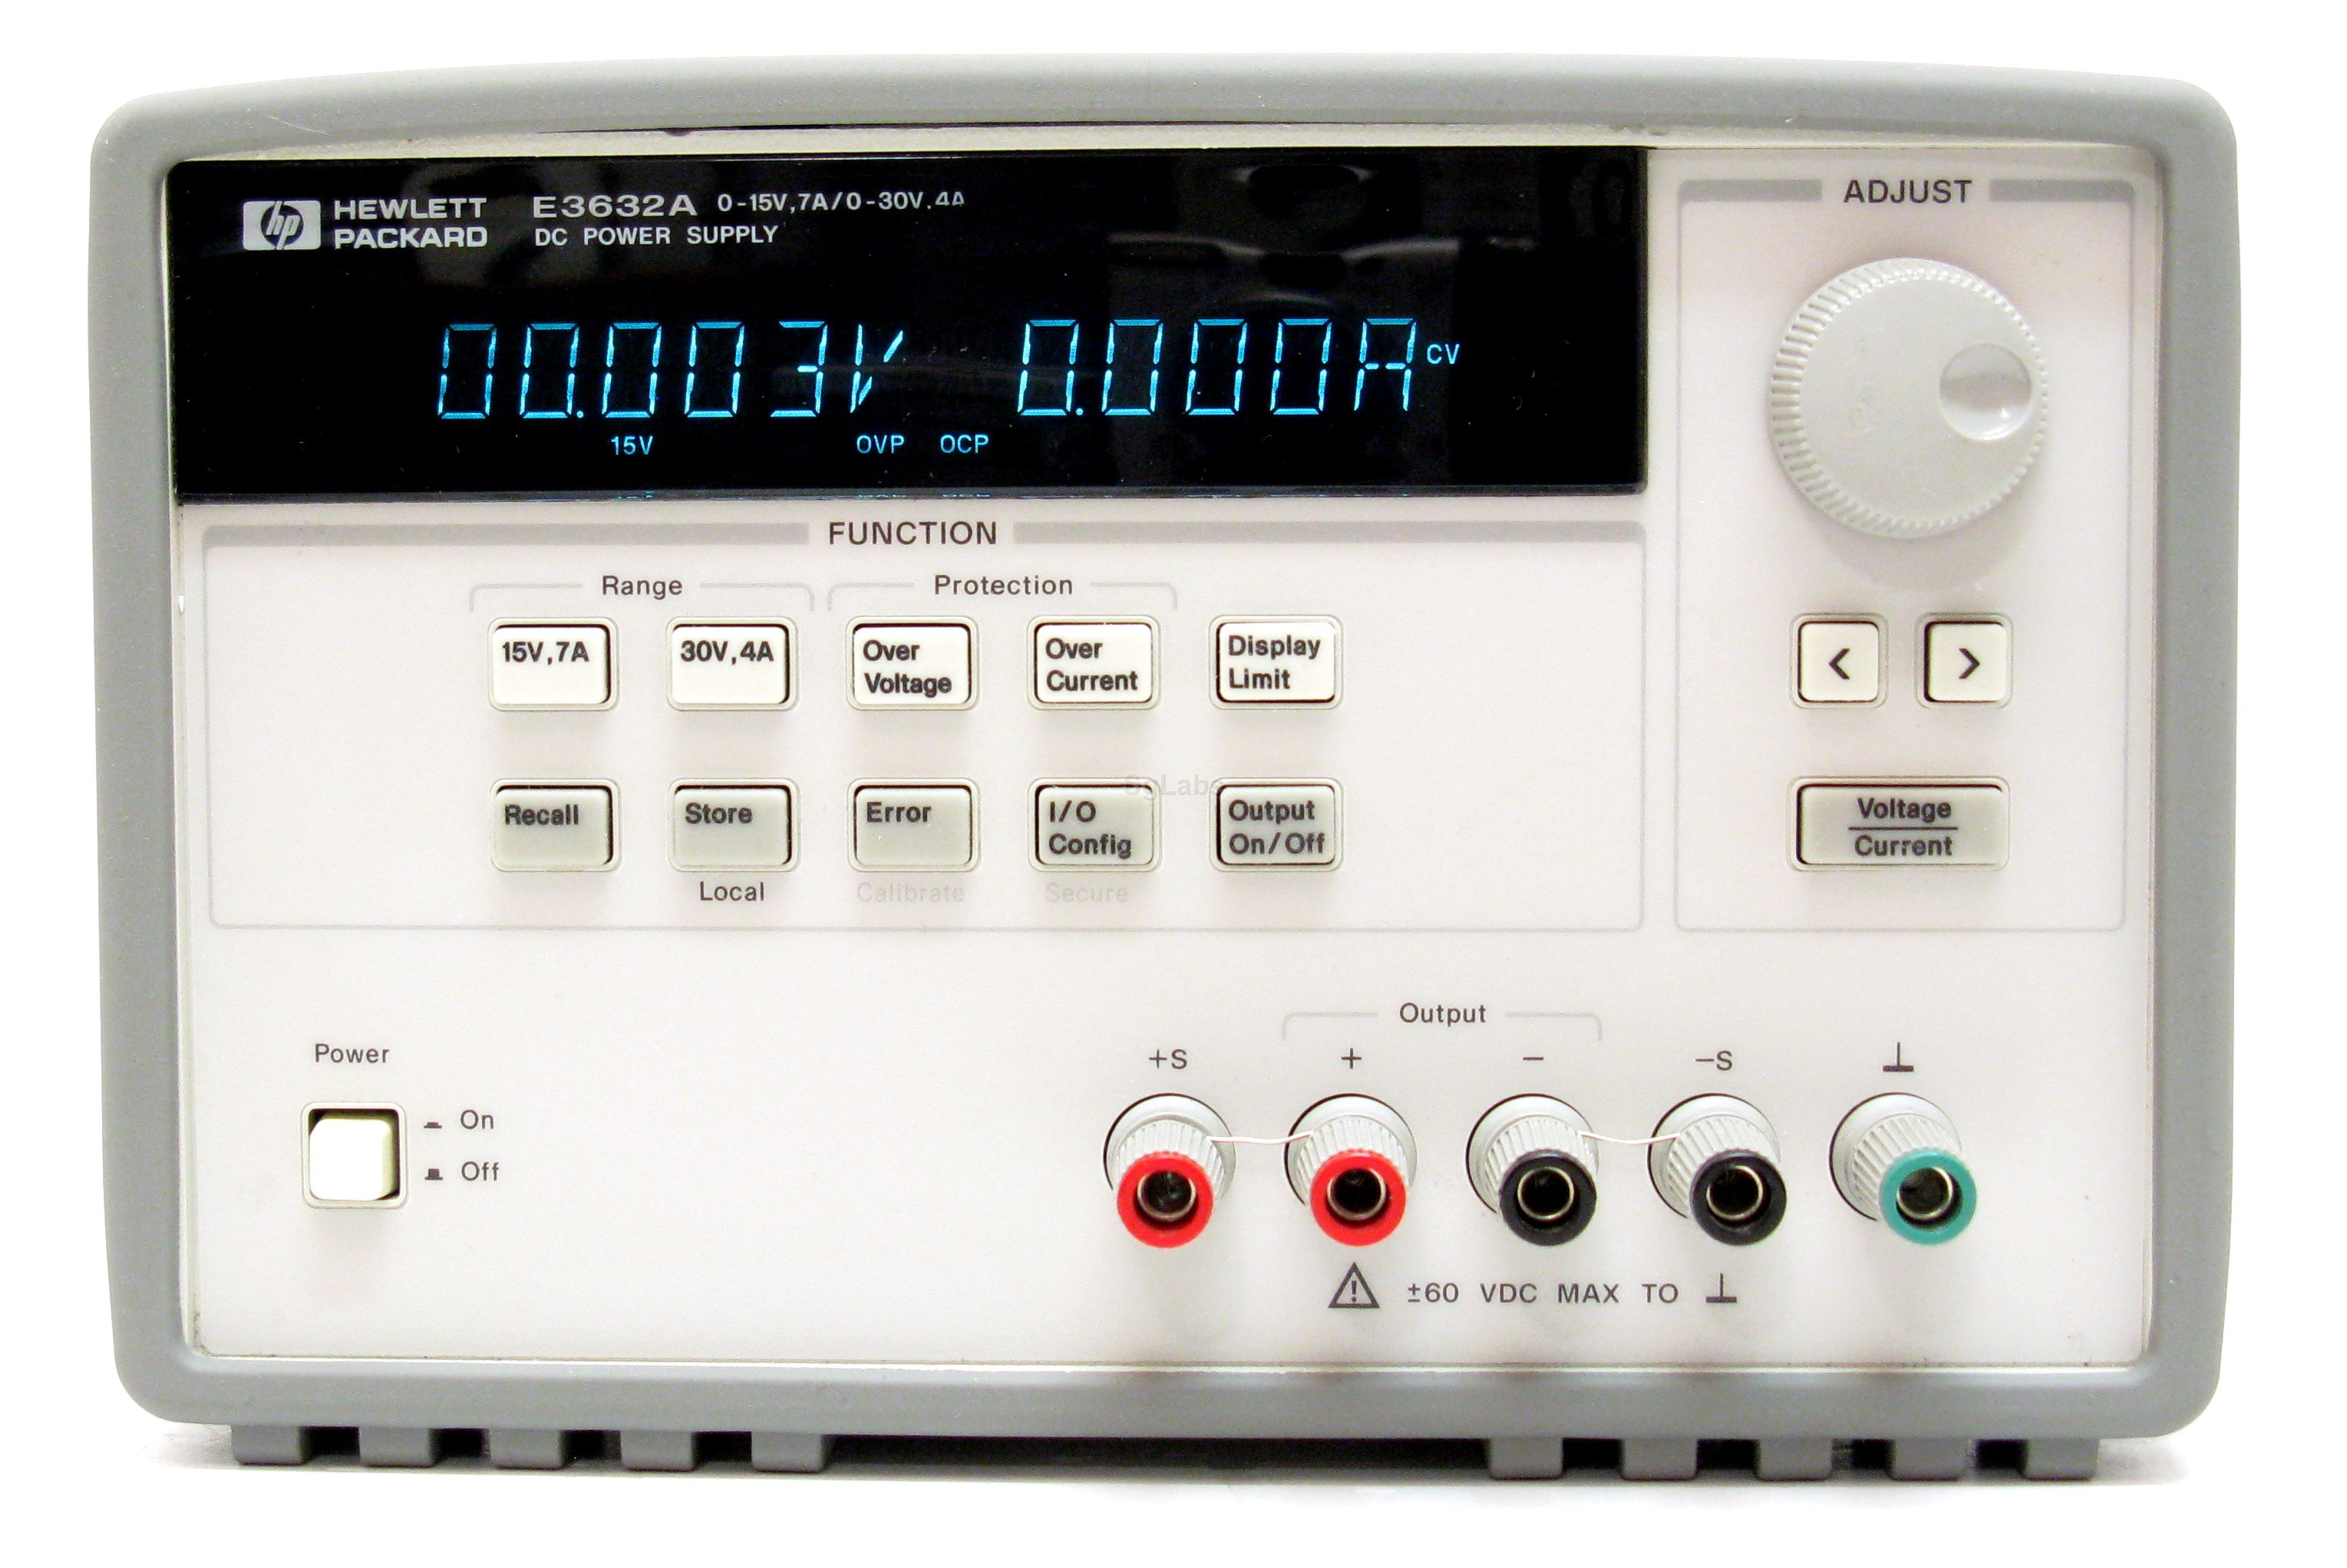 Power Supply Bench Test N6705c Keysight Technologies Bench